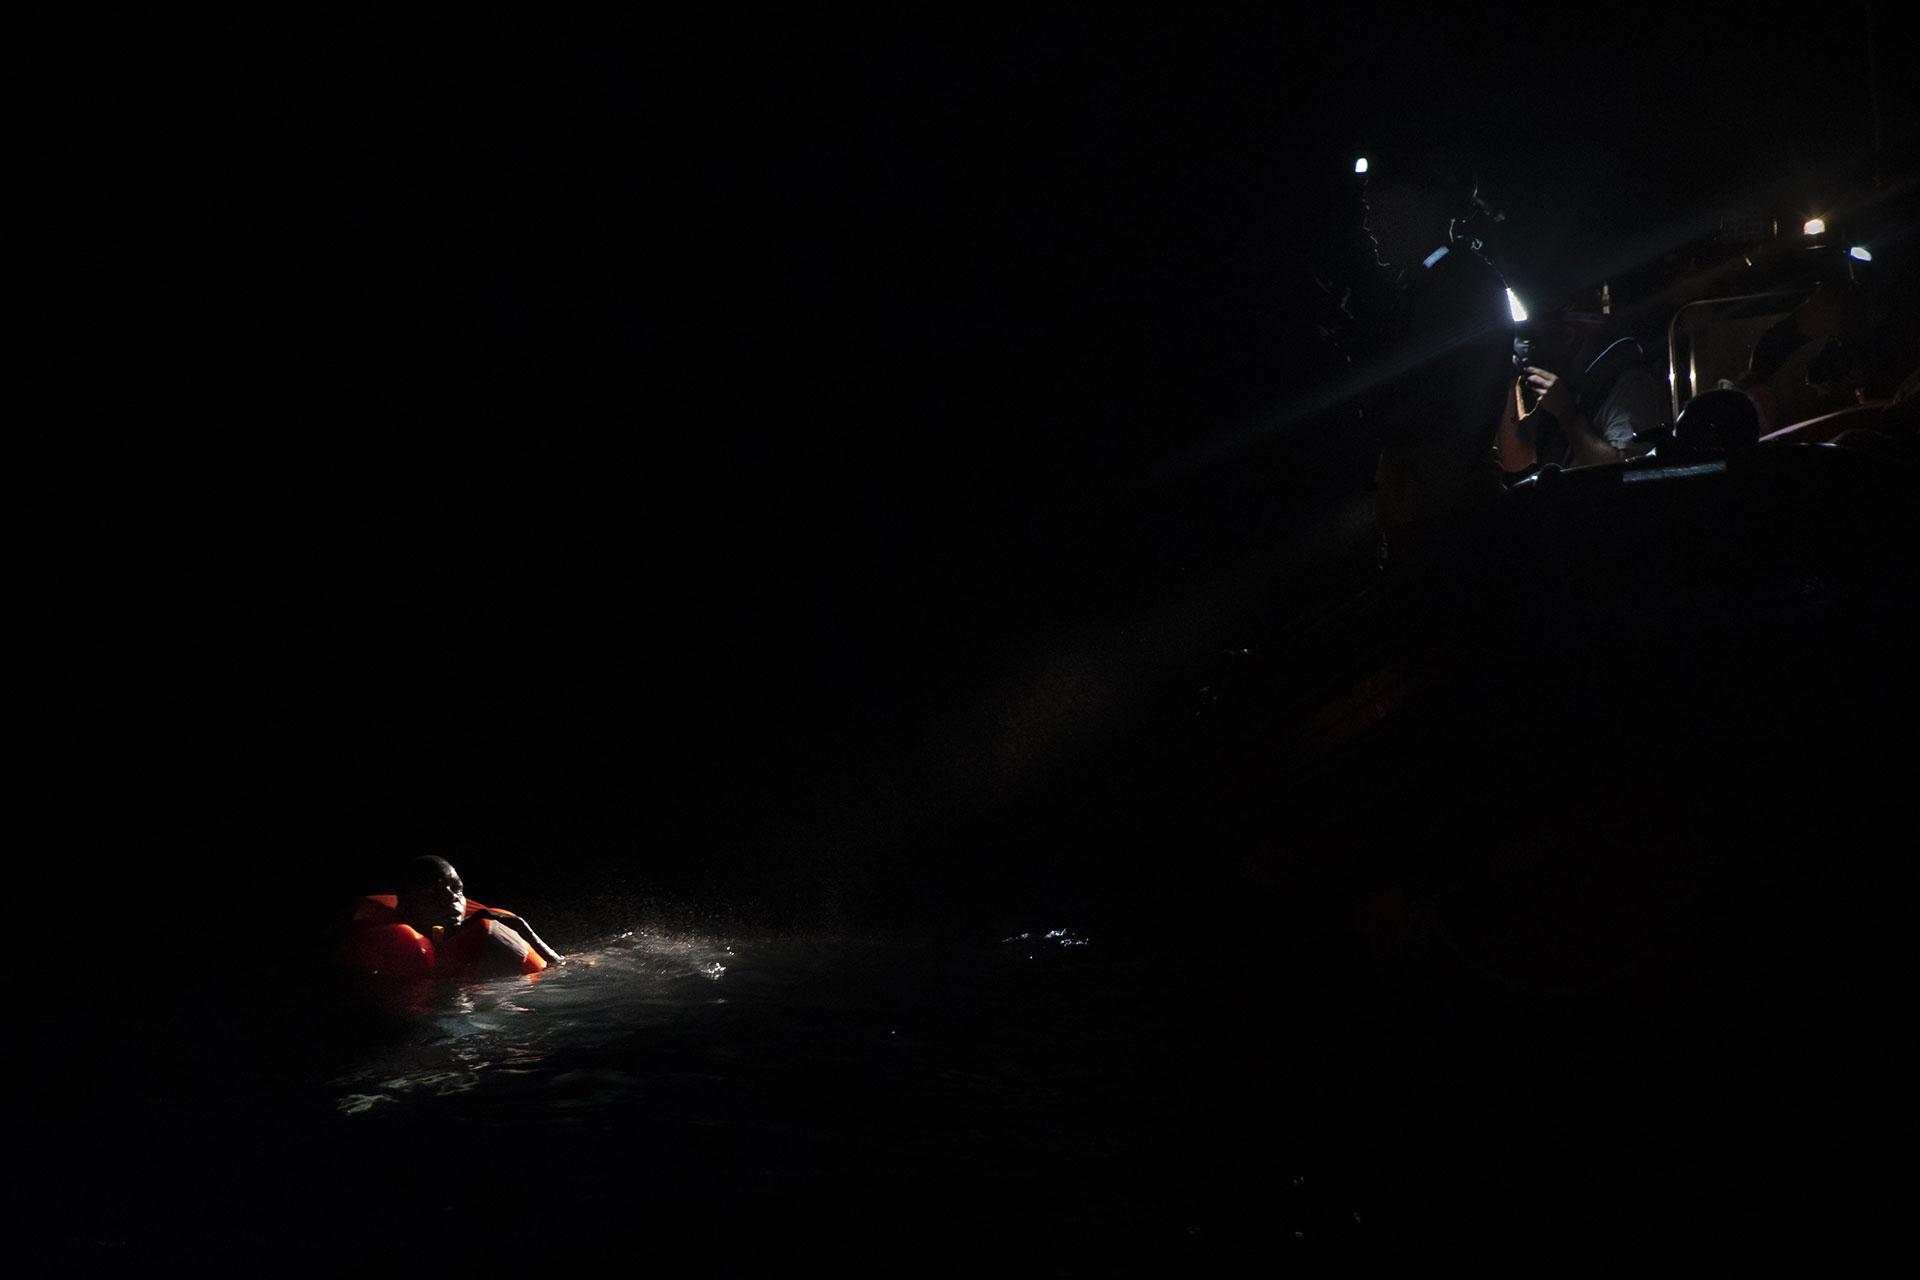 Mohamed, 17, from The Gambia, floating in the water during a search and rescue operation organised by the NGO Proactiva Open Arms on 2 August 2018.